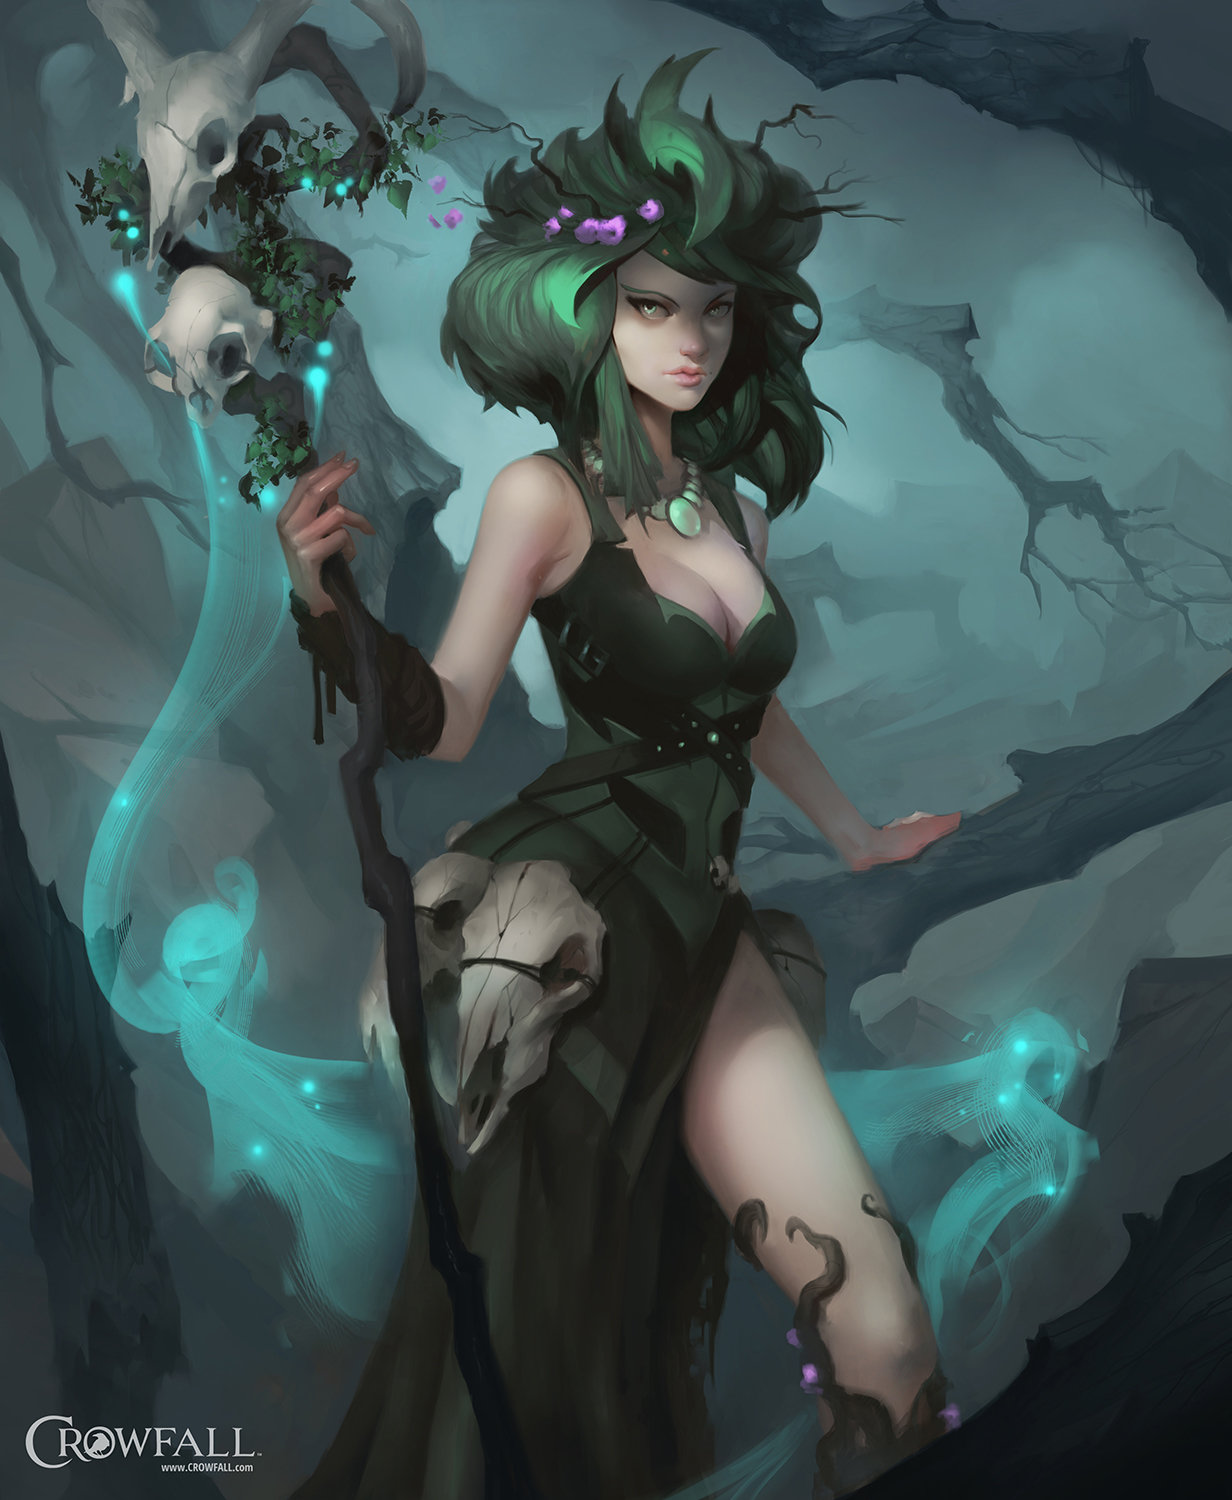 Dave Greco Digital Painting Crowfall Druid Class